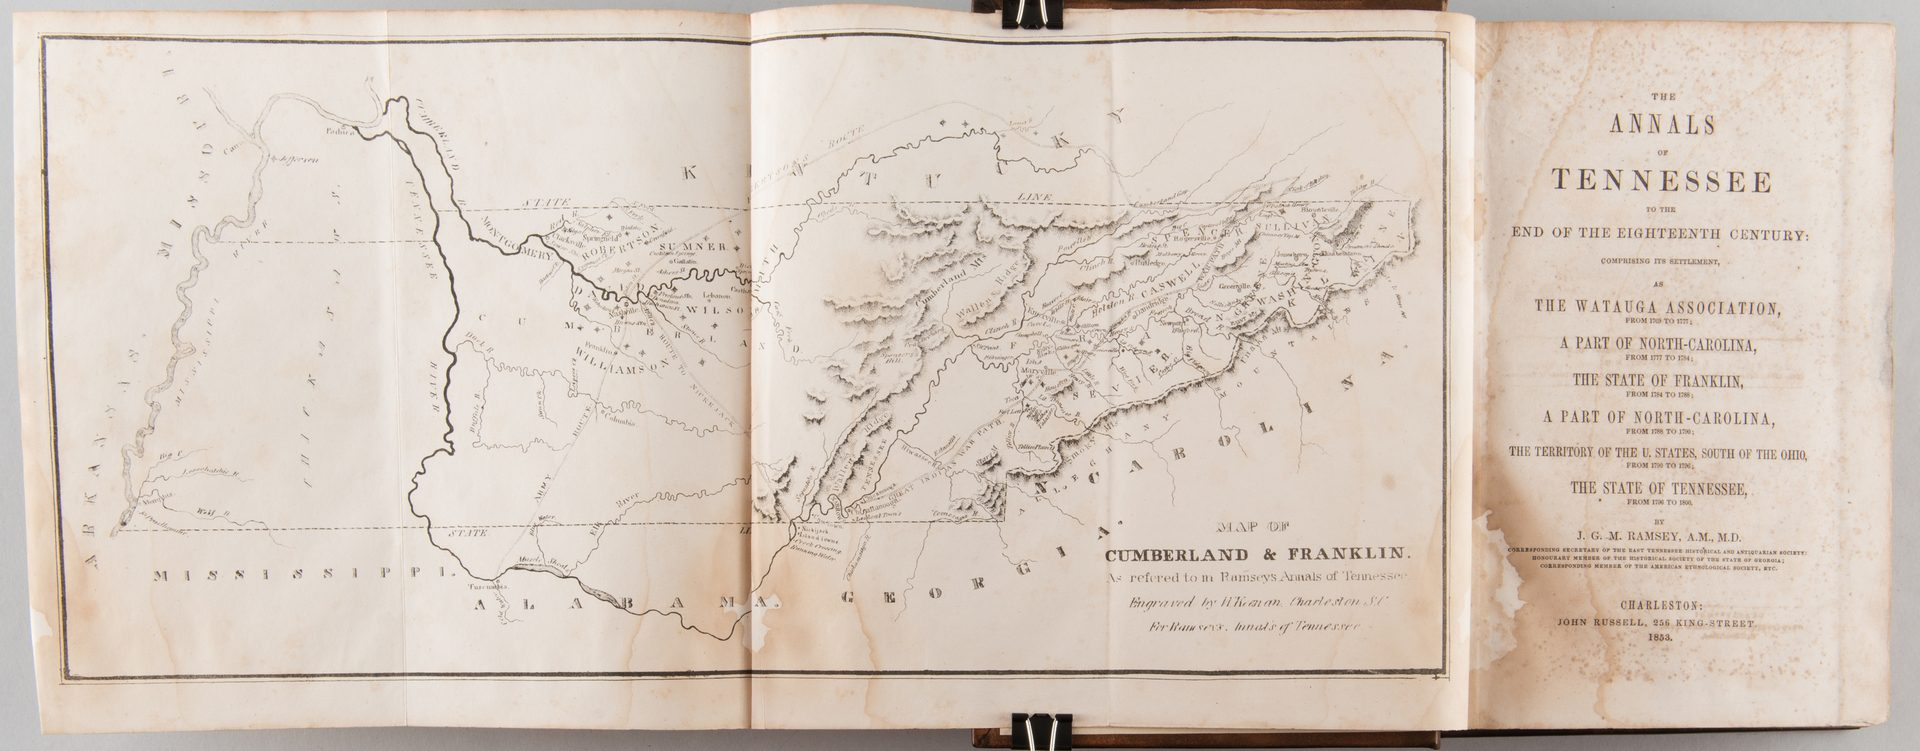 Lot 860: Ramsey's Annals of Tennessee 1853 Charleston inc. Map